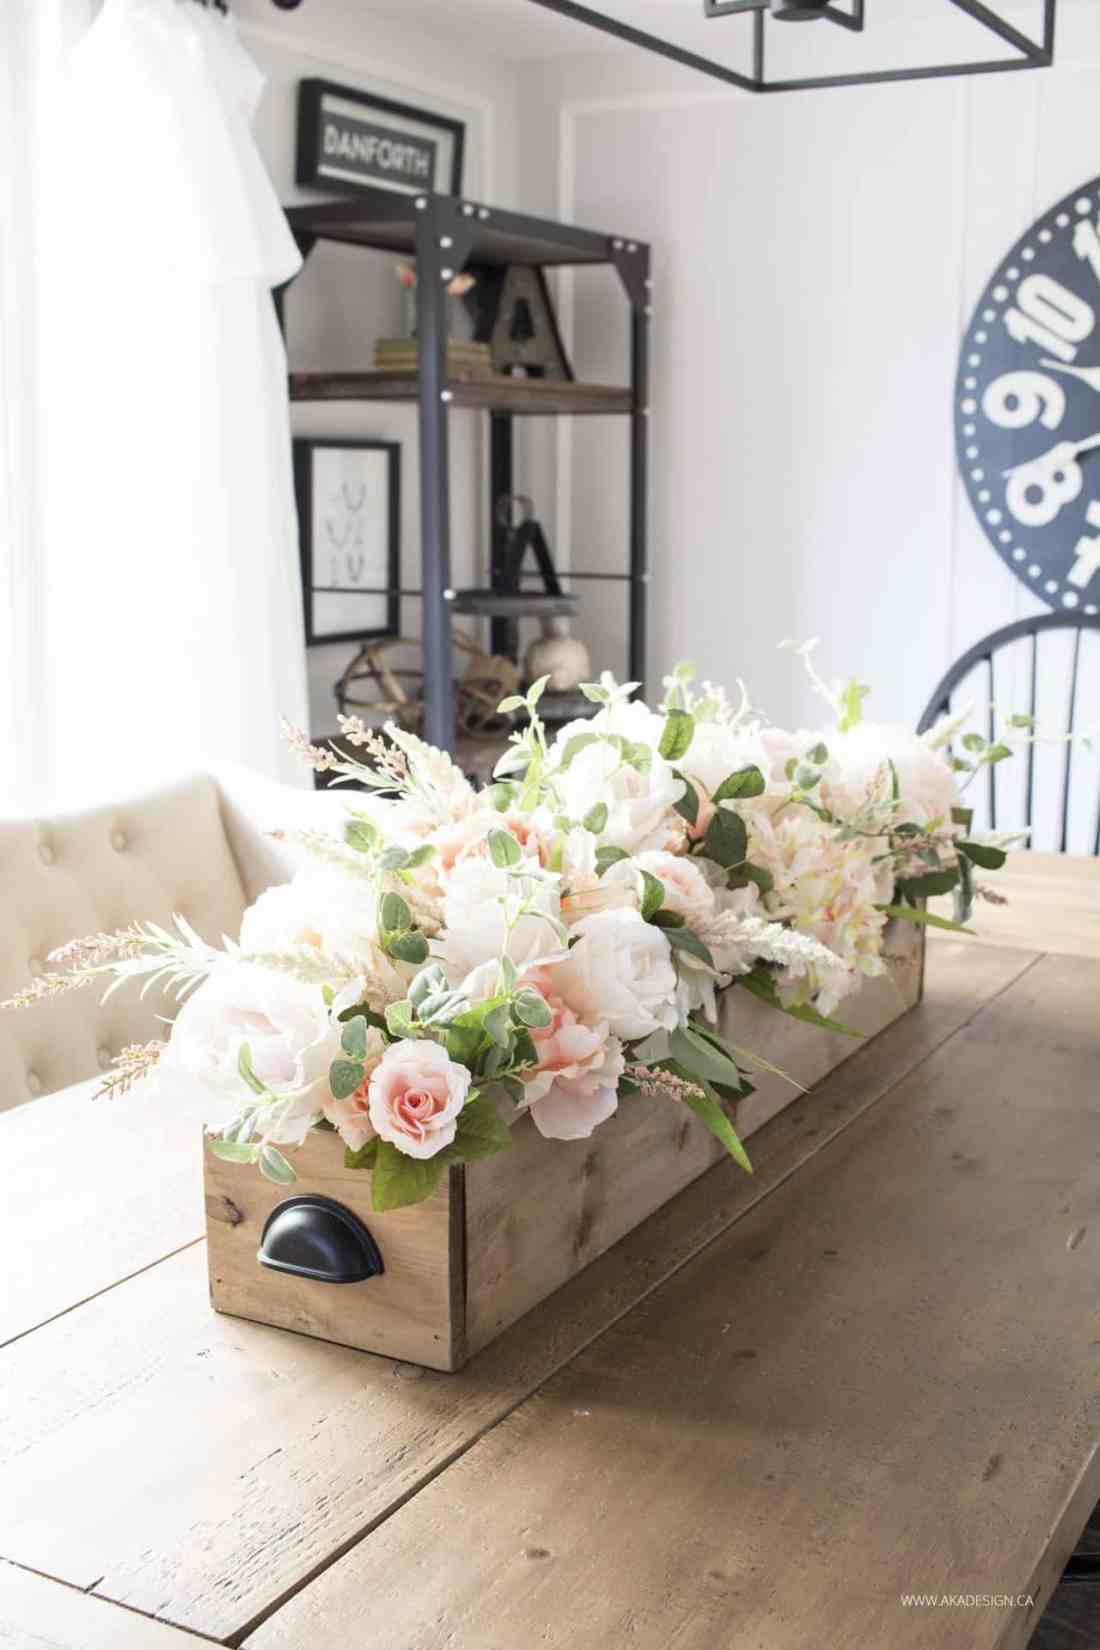 faux florals in crate centerpiece